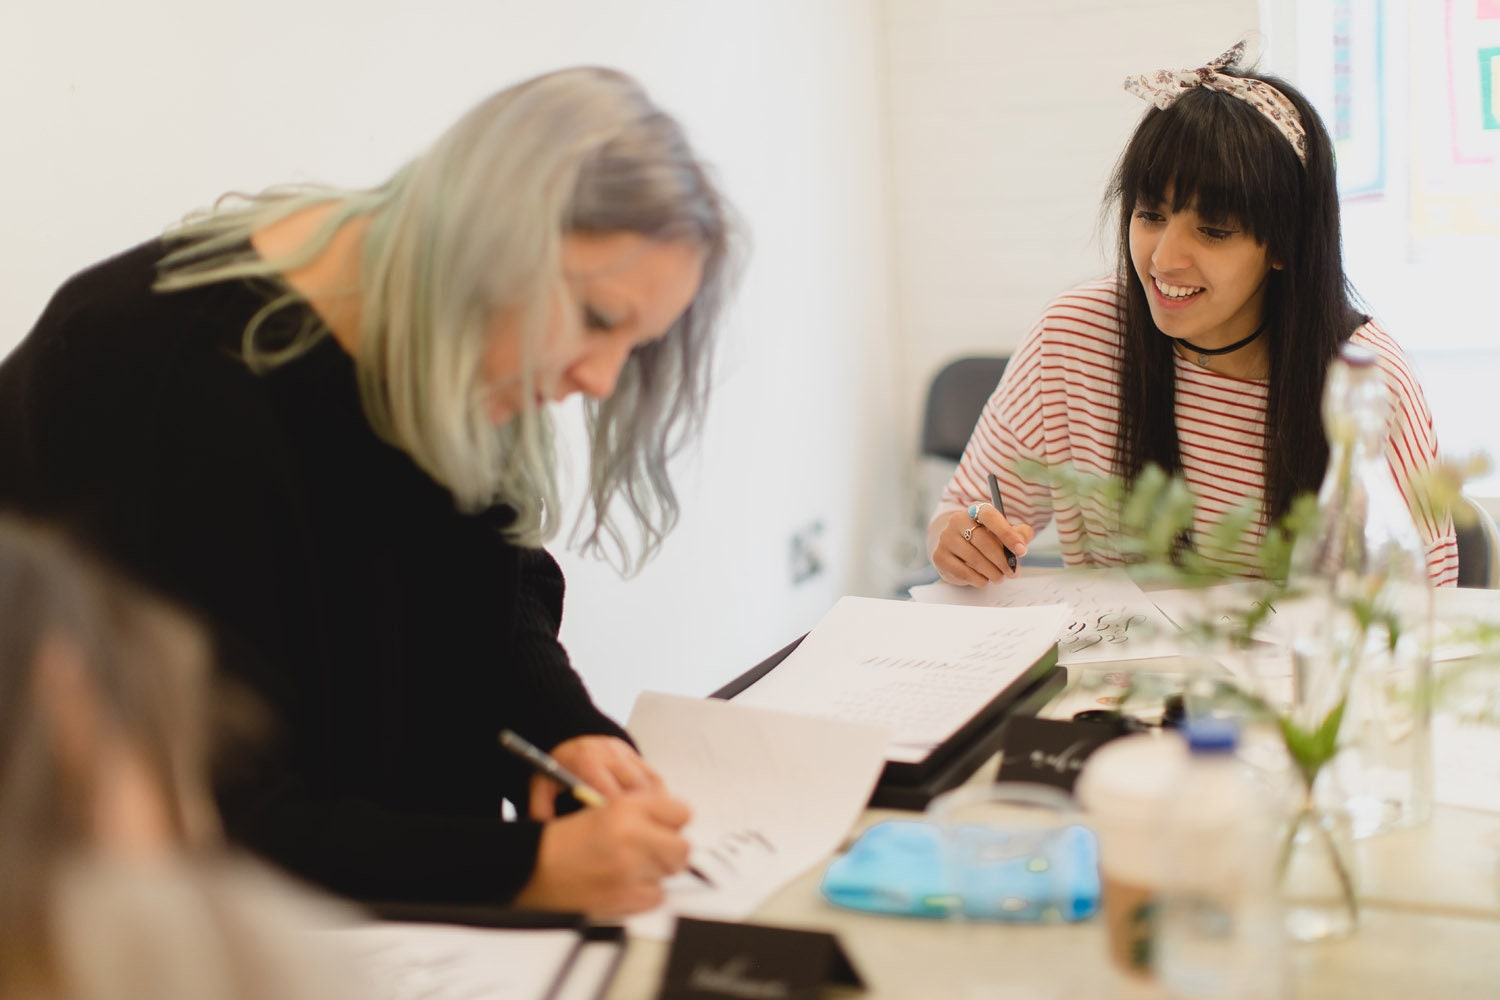 26th may 2018 modern calligraphy workshop in manchester